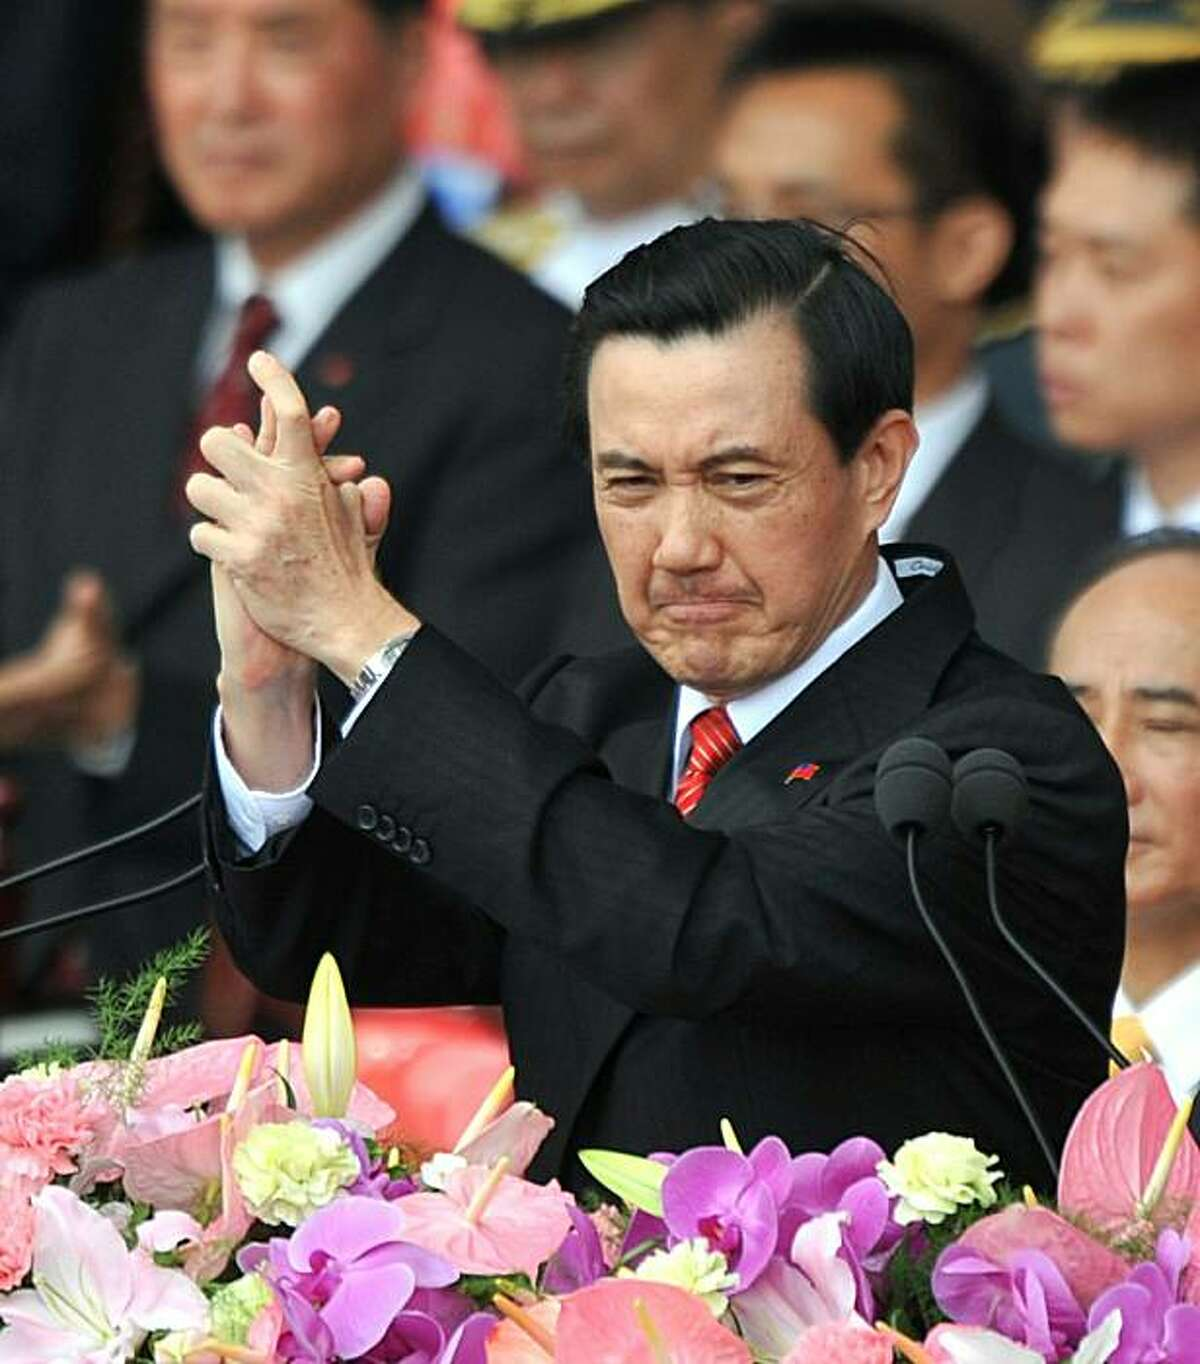 Taiwan President Ma Ying-jeou speaks at a National Day celebration in downtown Taipei on October 10, 2010. Taiwan will keep buying arms abroad as it cannot solely rely on improving ties with China for its security, Ma said. Taiwanese experts estimate that the Chinese military has more than 1,600 missiles aimed at the island.